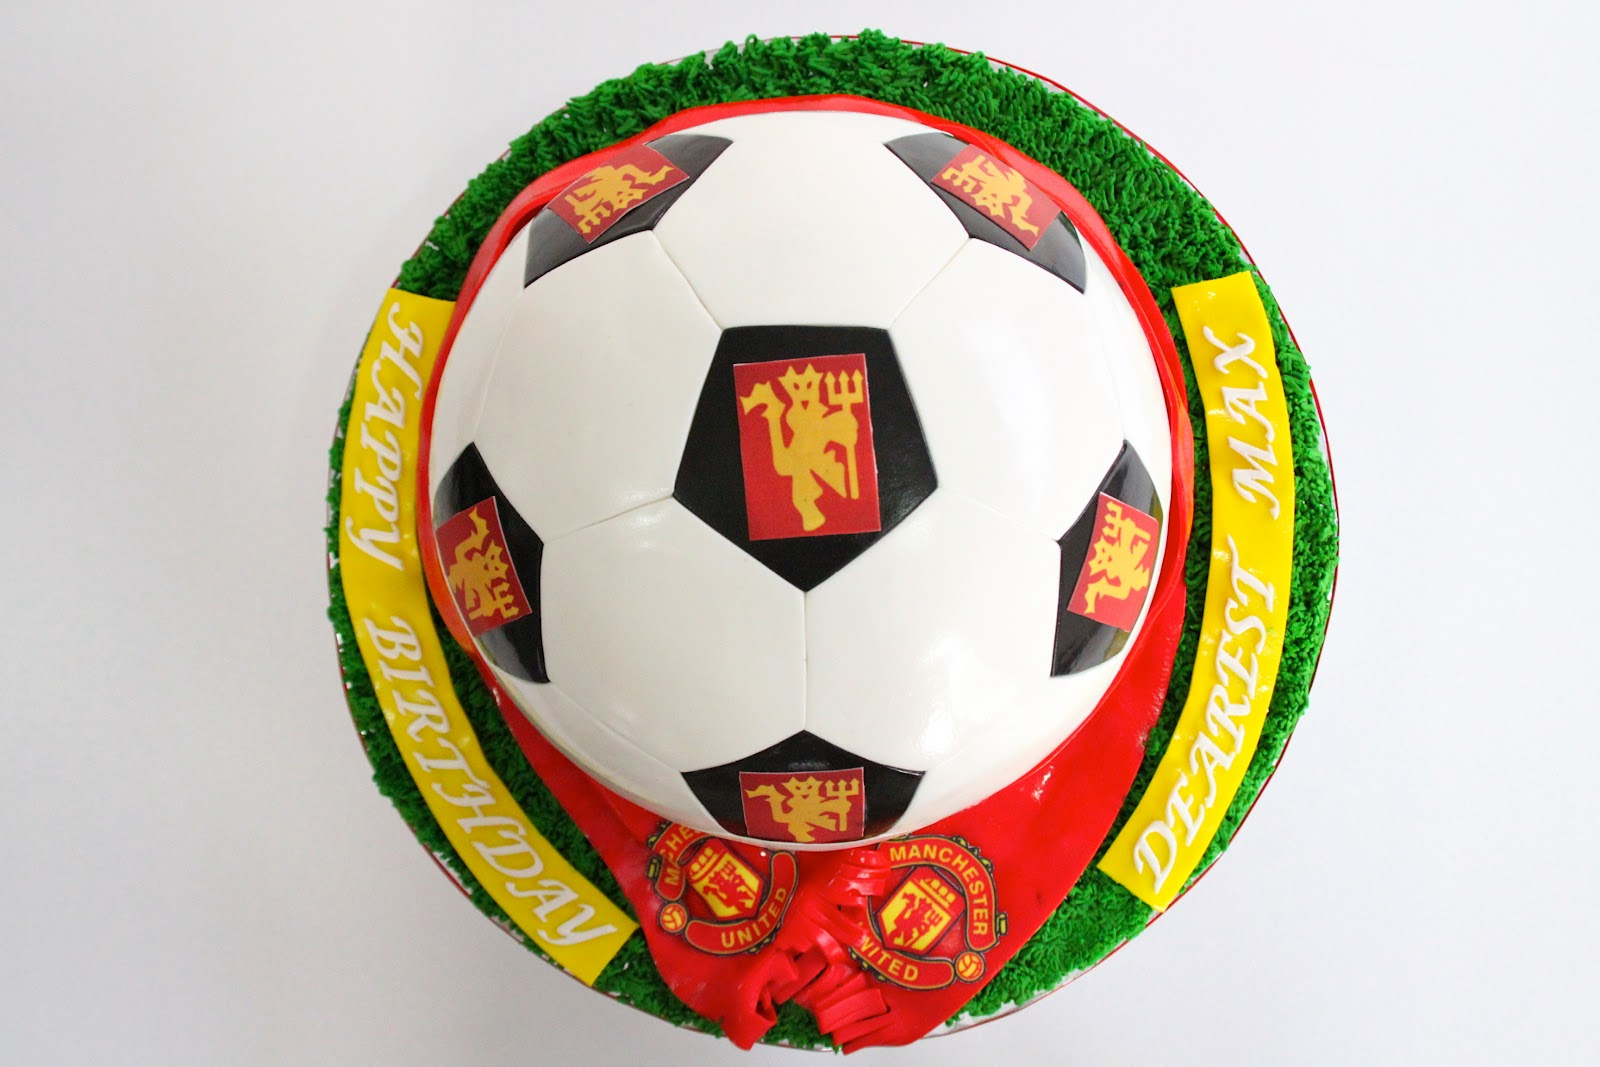 Manchester United Soccer Ball Cake Celebrate With Cake